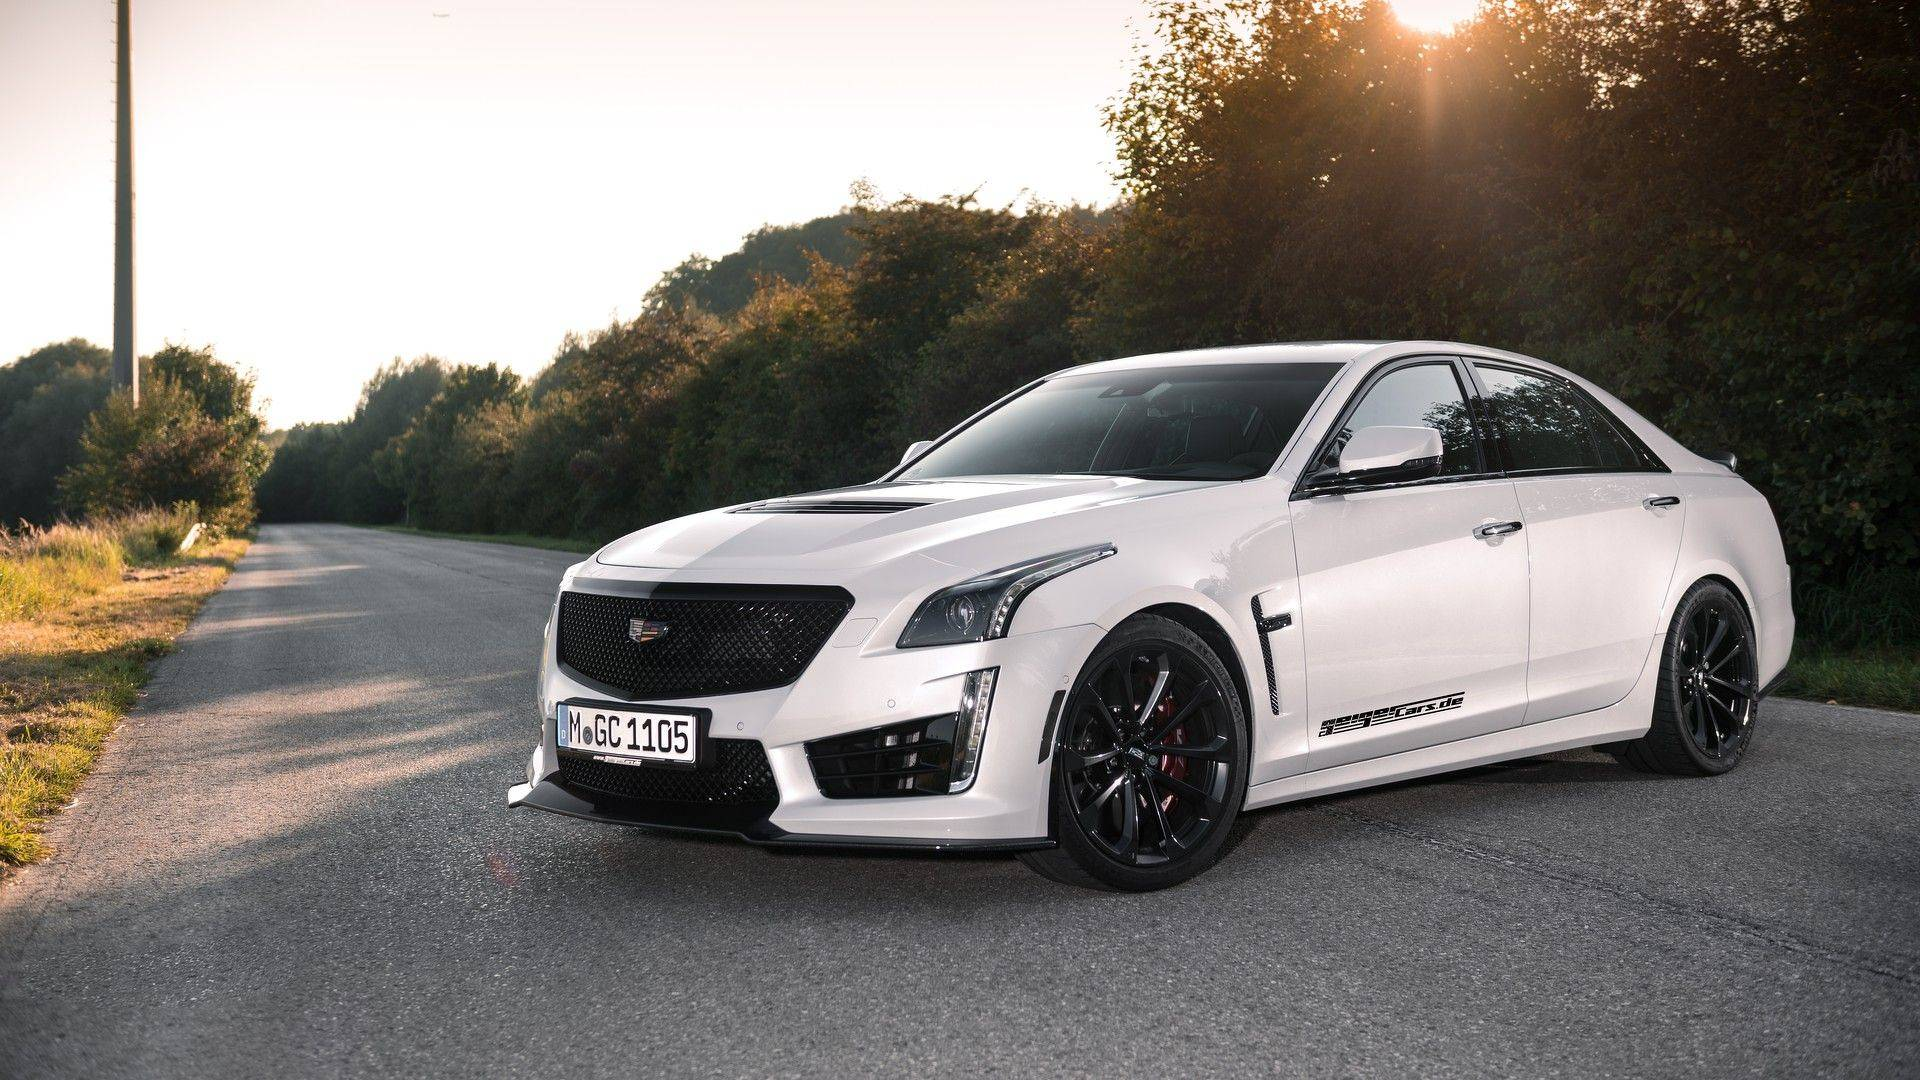 cadillac-cts-v-by-geigercars (1)